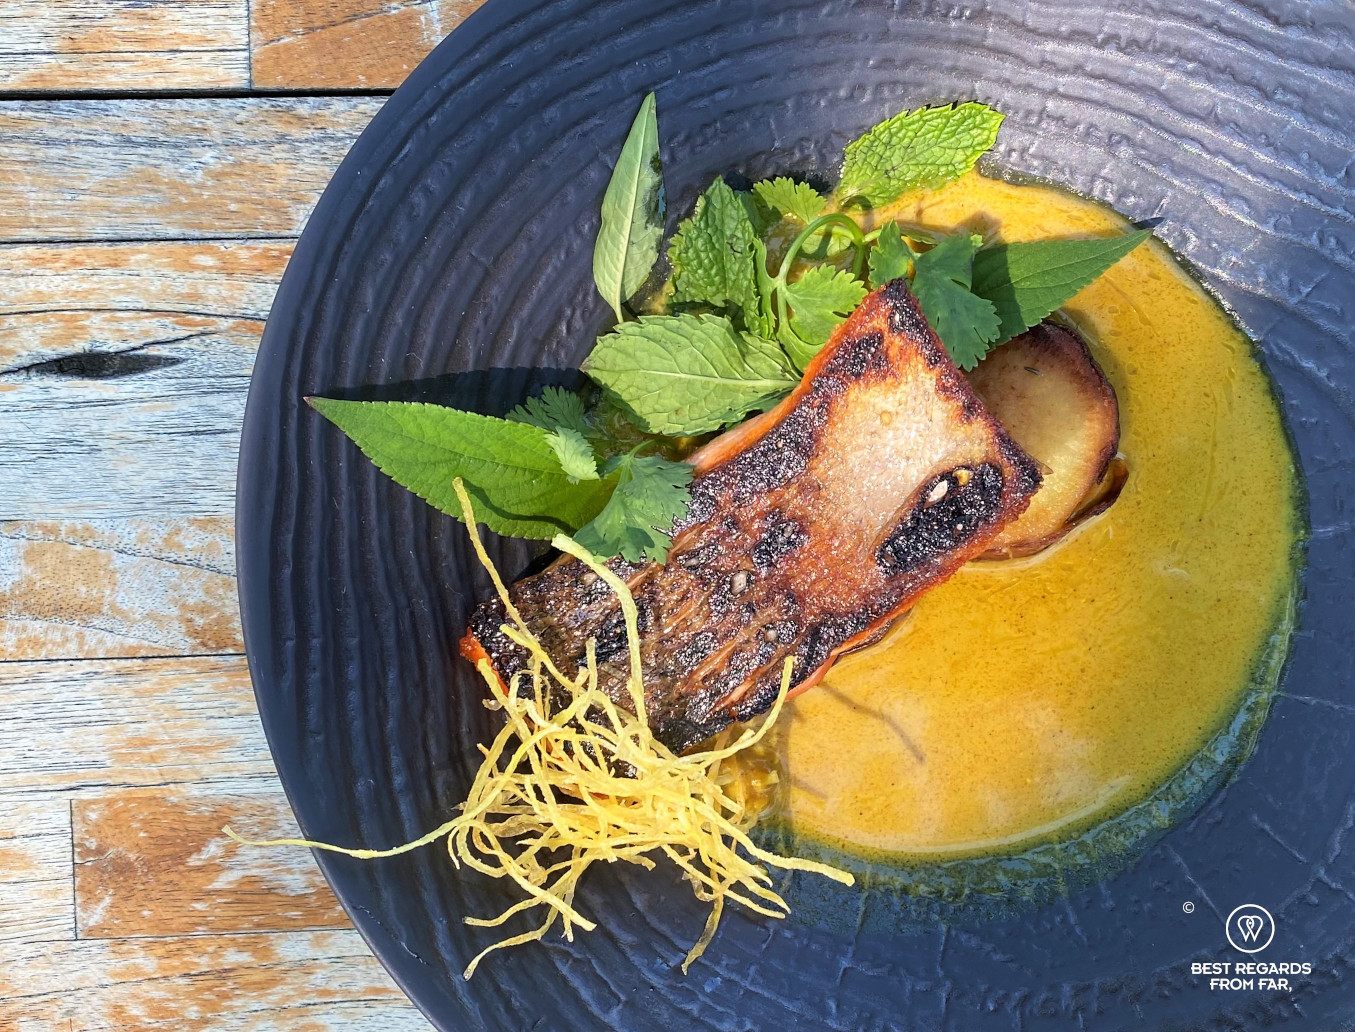 View from the top of the wild trout on a wooden table at the Chefs Warehouse at Maison, Franschhoek